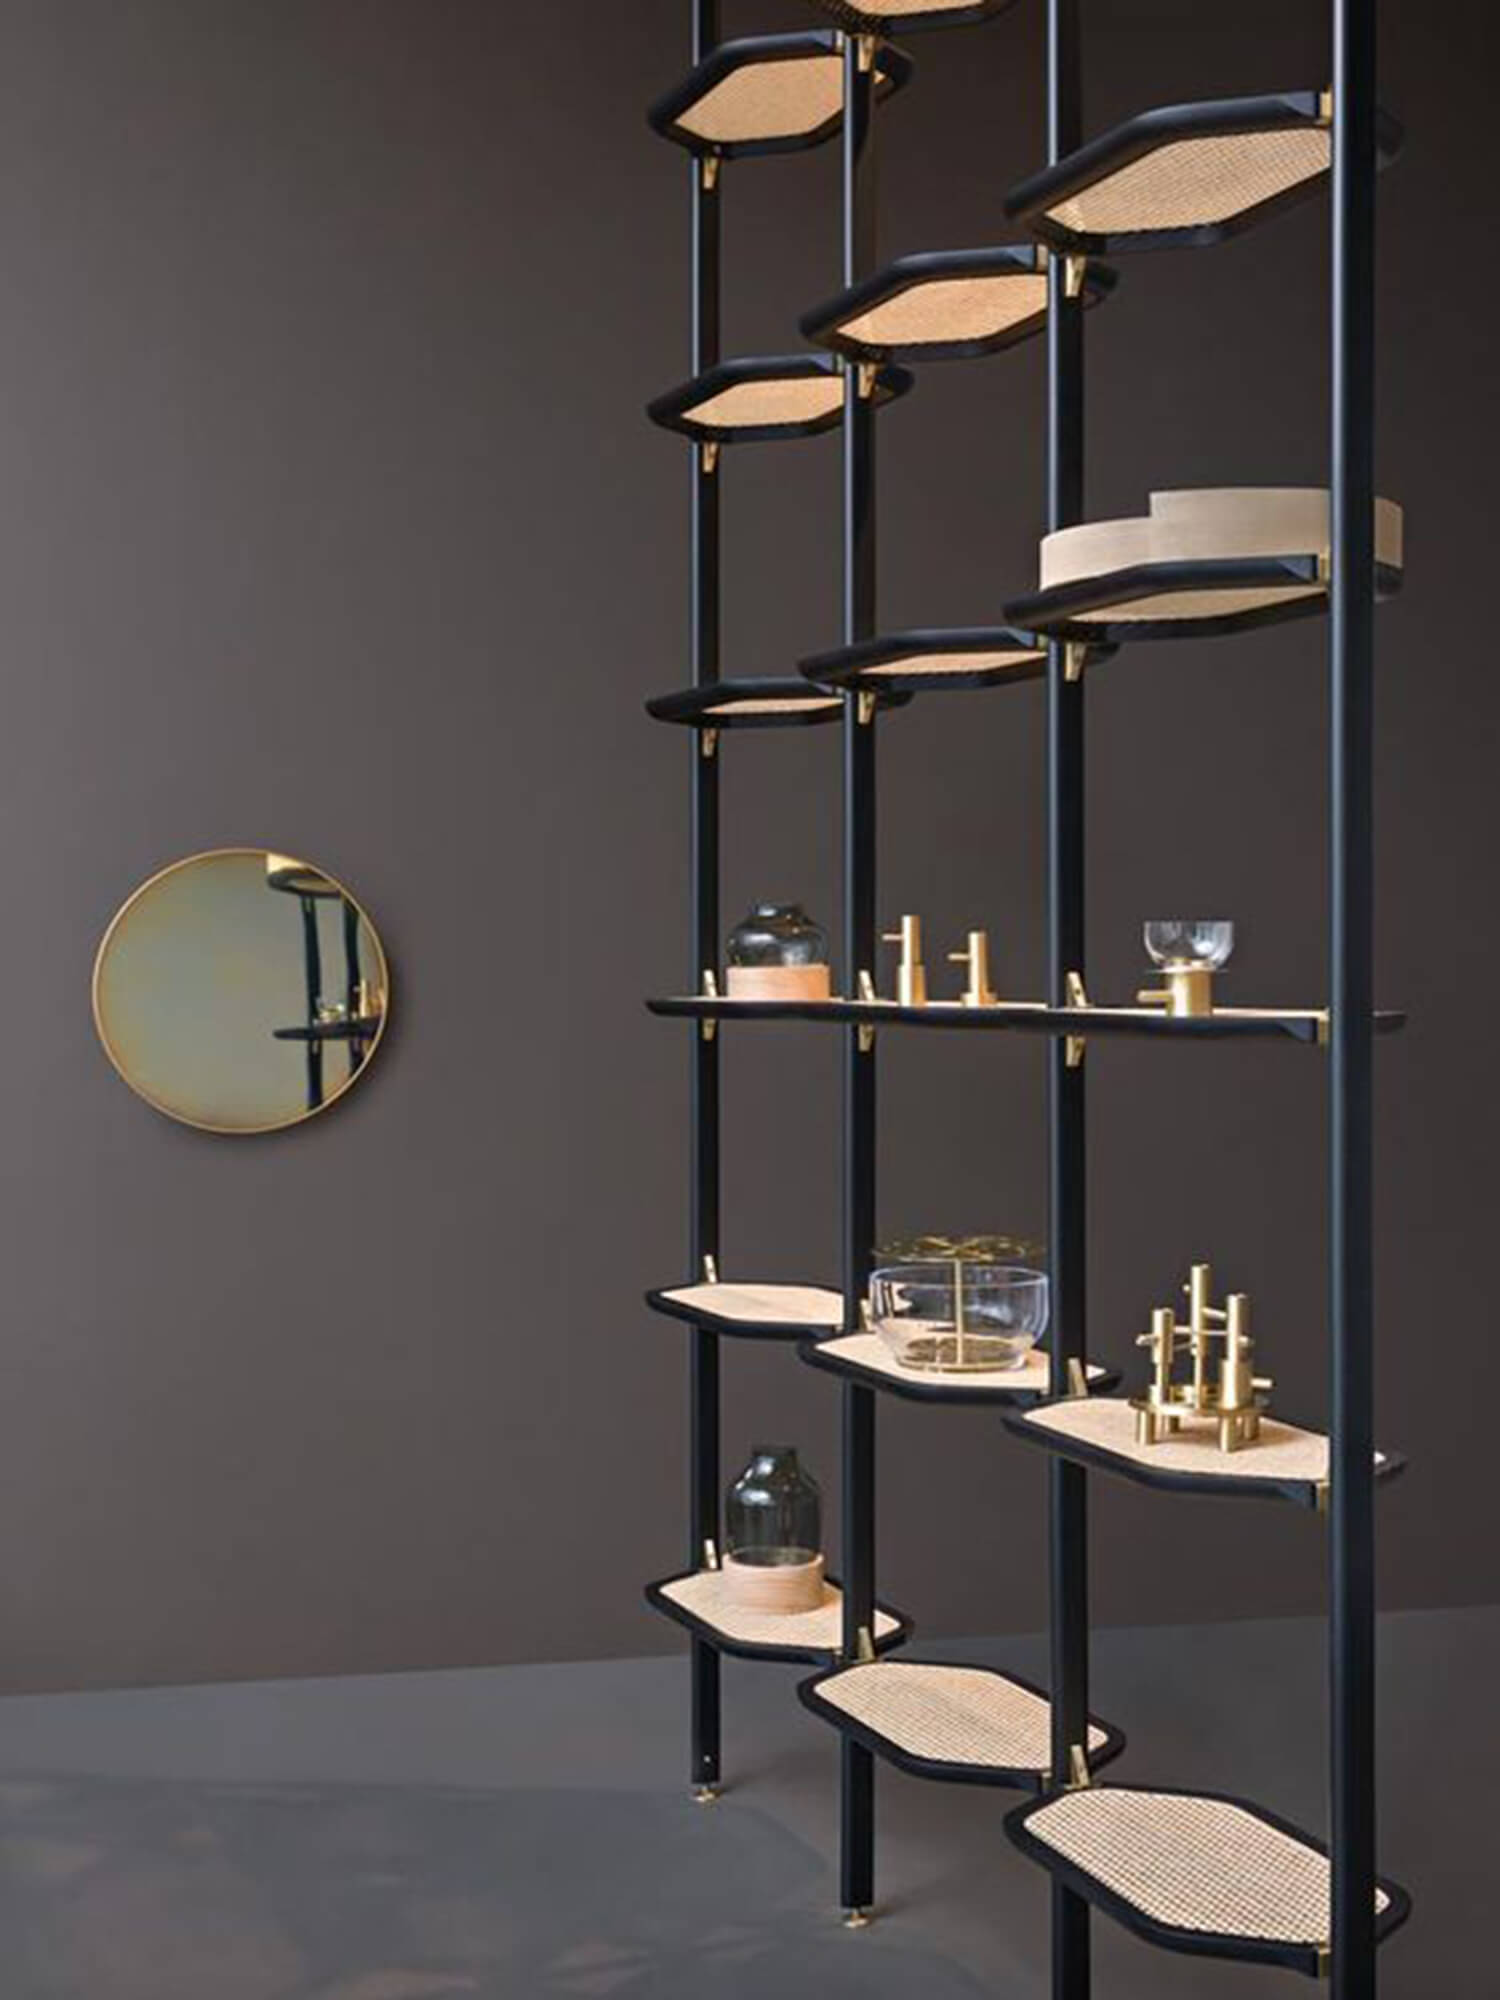 Romboidale Shelving Pietro Russo x Baxter01